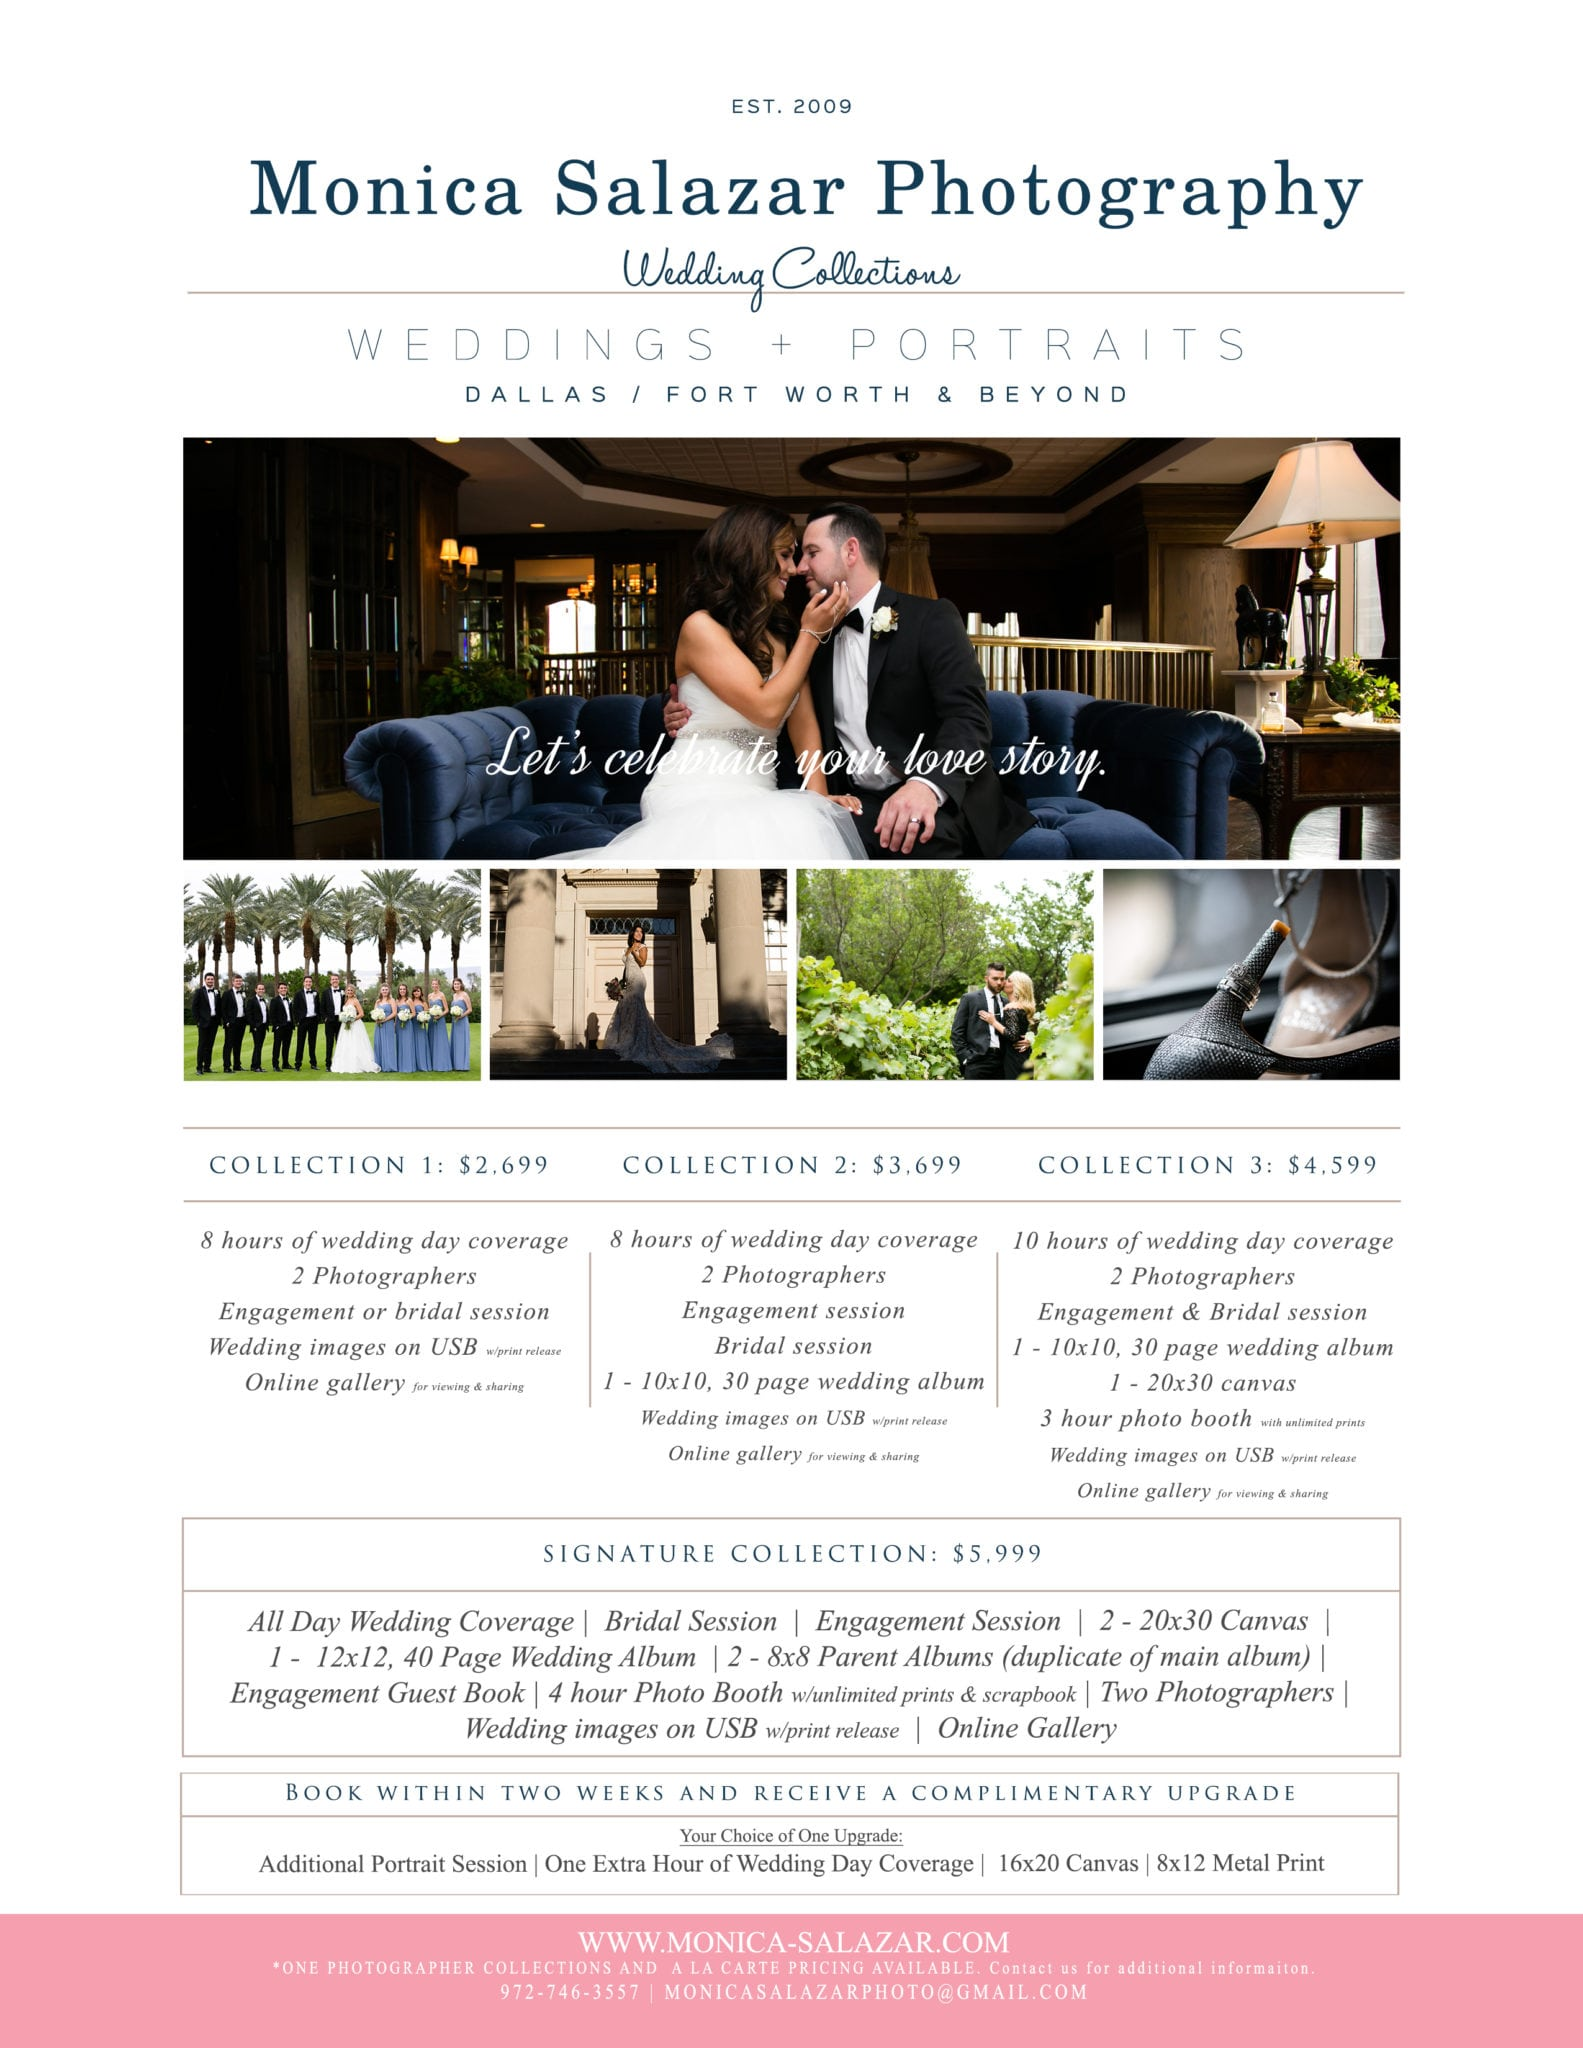 Wedding Photography Packages By Fort Worth Photographers Dallas Weddings With The Most Popular Collections That Include